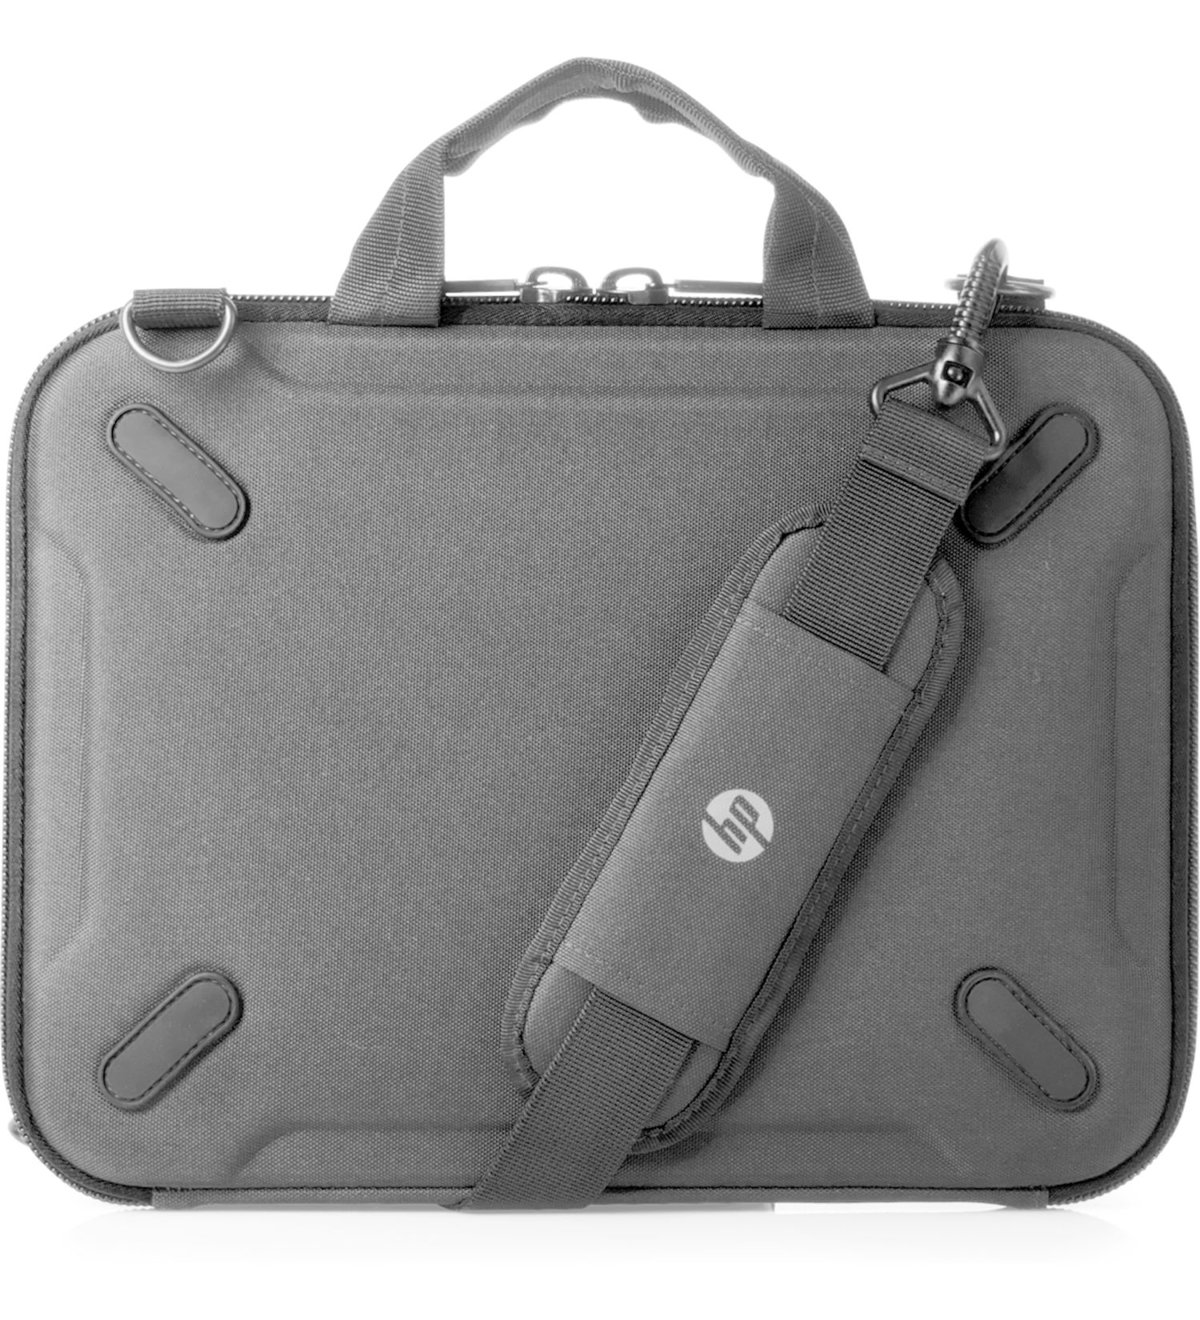 "HP Always-On Carrying Case for 11"" Chromebook, Notebook Carrying Case (Used)"